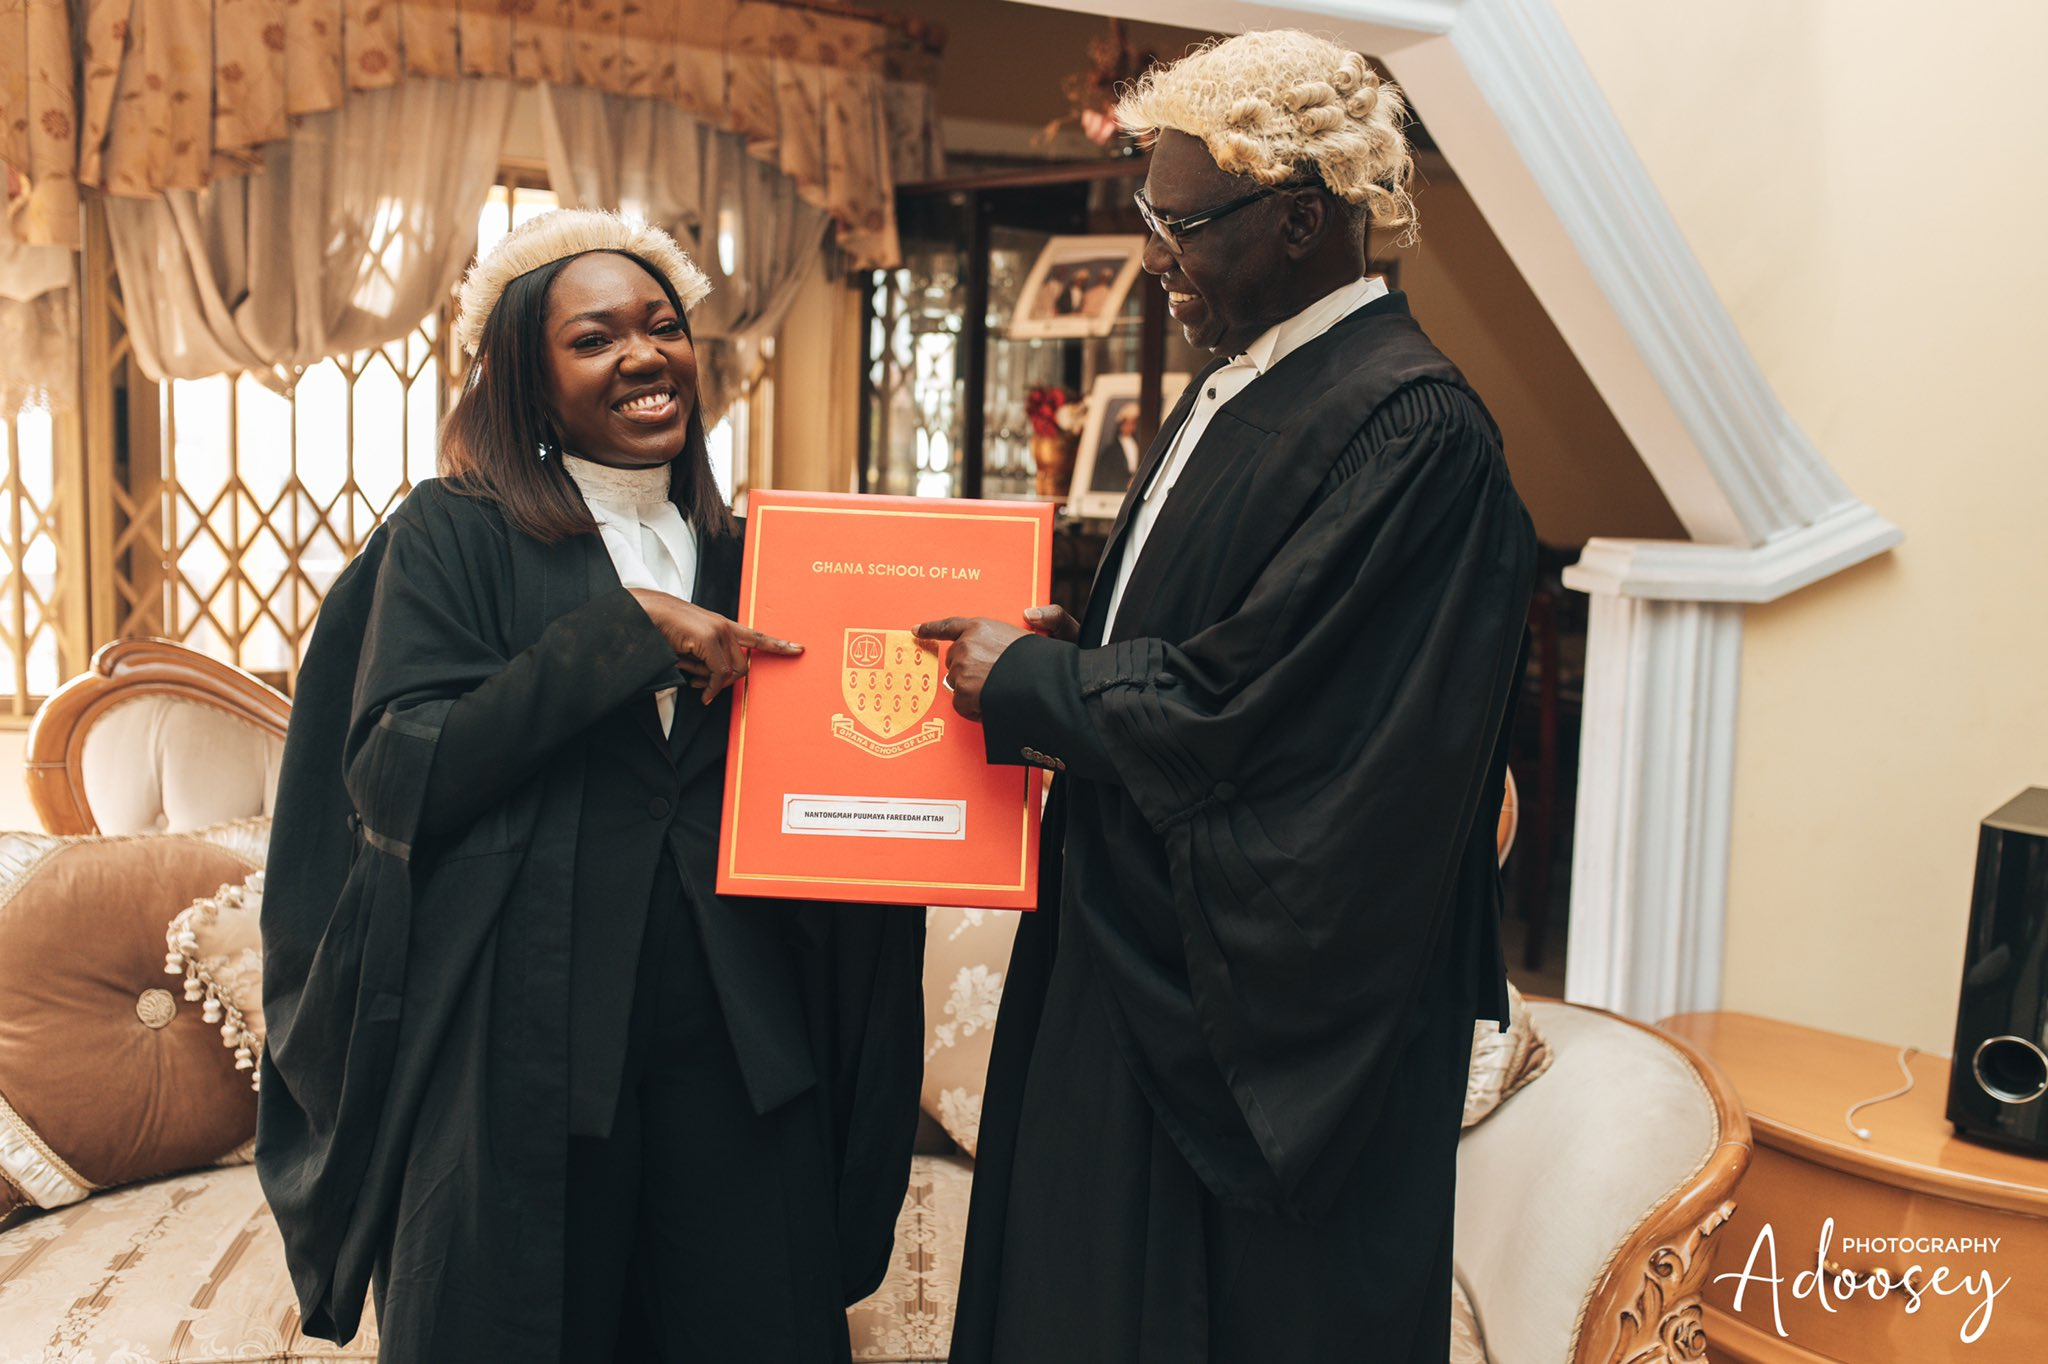 Meet Puumaya Nantogmah, Young Lady Called To The Bar on Her Father's 25th Anniversary As A Lawyer